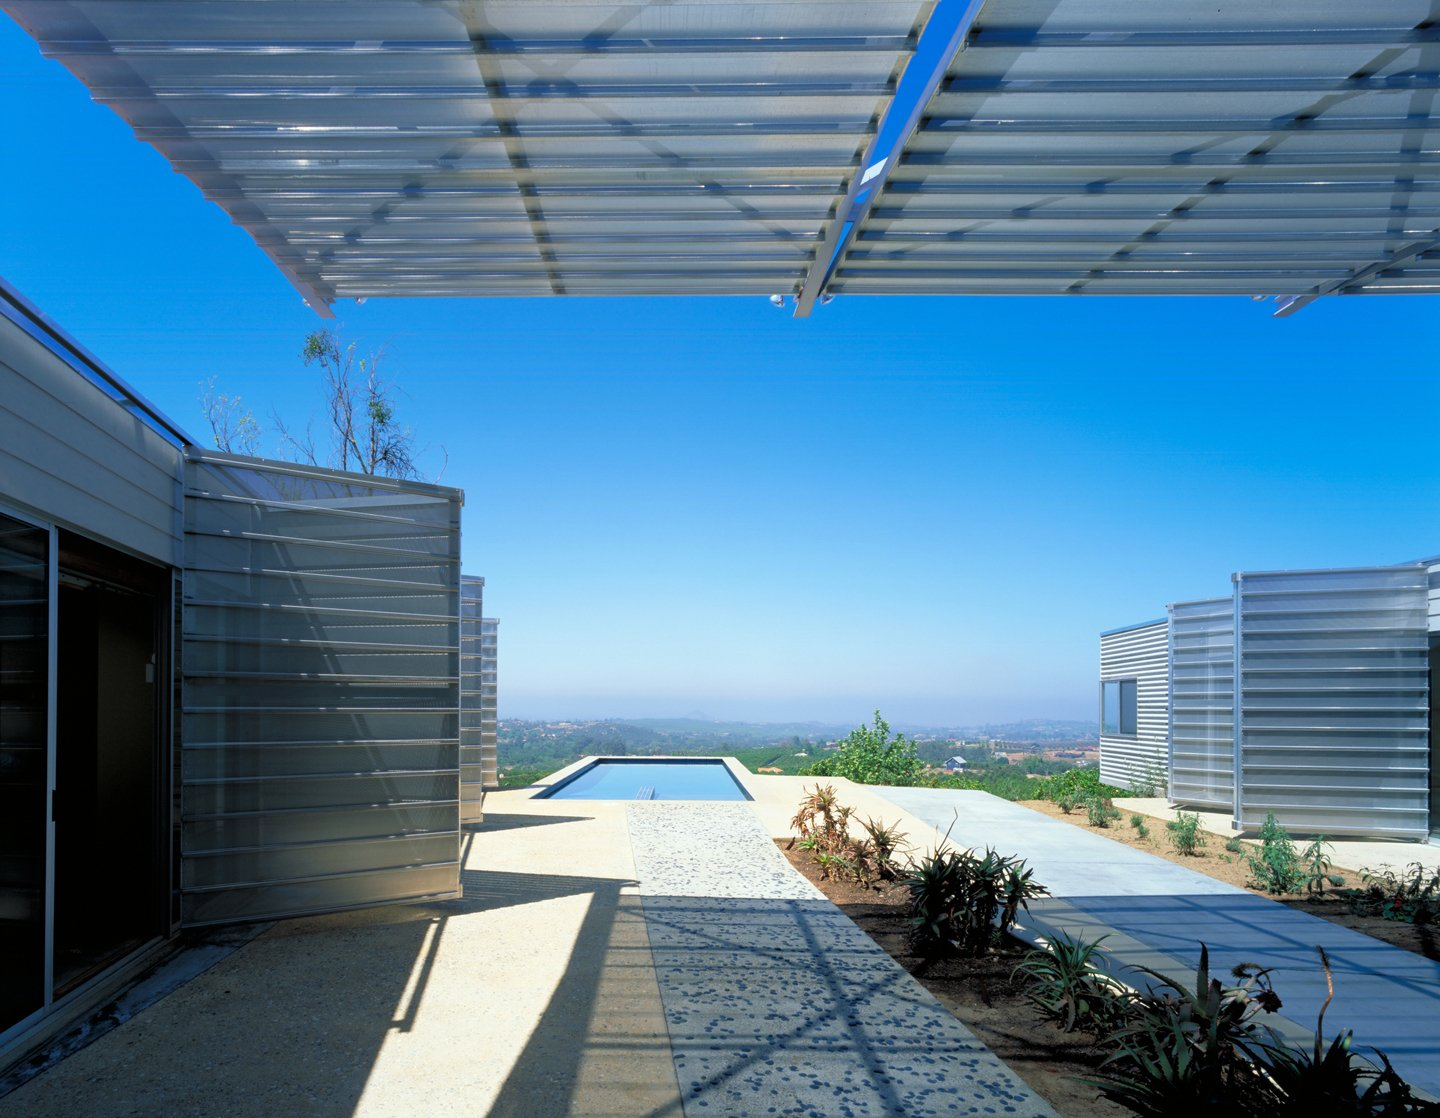 #exterior #outdoor #outside #pool #pooldesign #desert #view #eco #green #sustainable #ValleyCenter #California #KevinDalyArchitects  Valley Center House